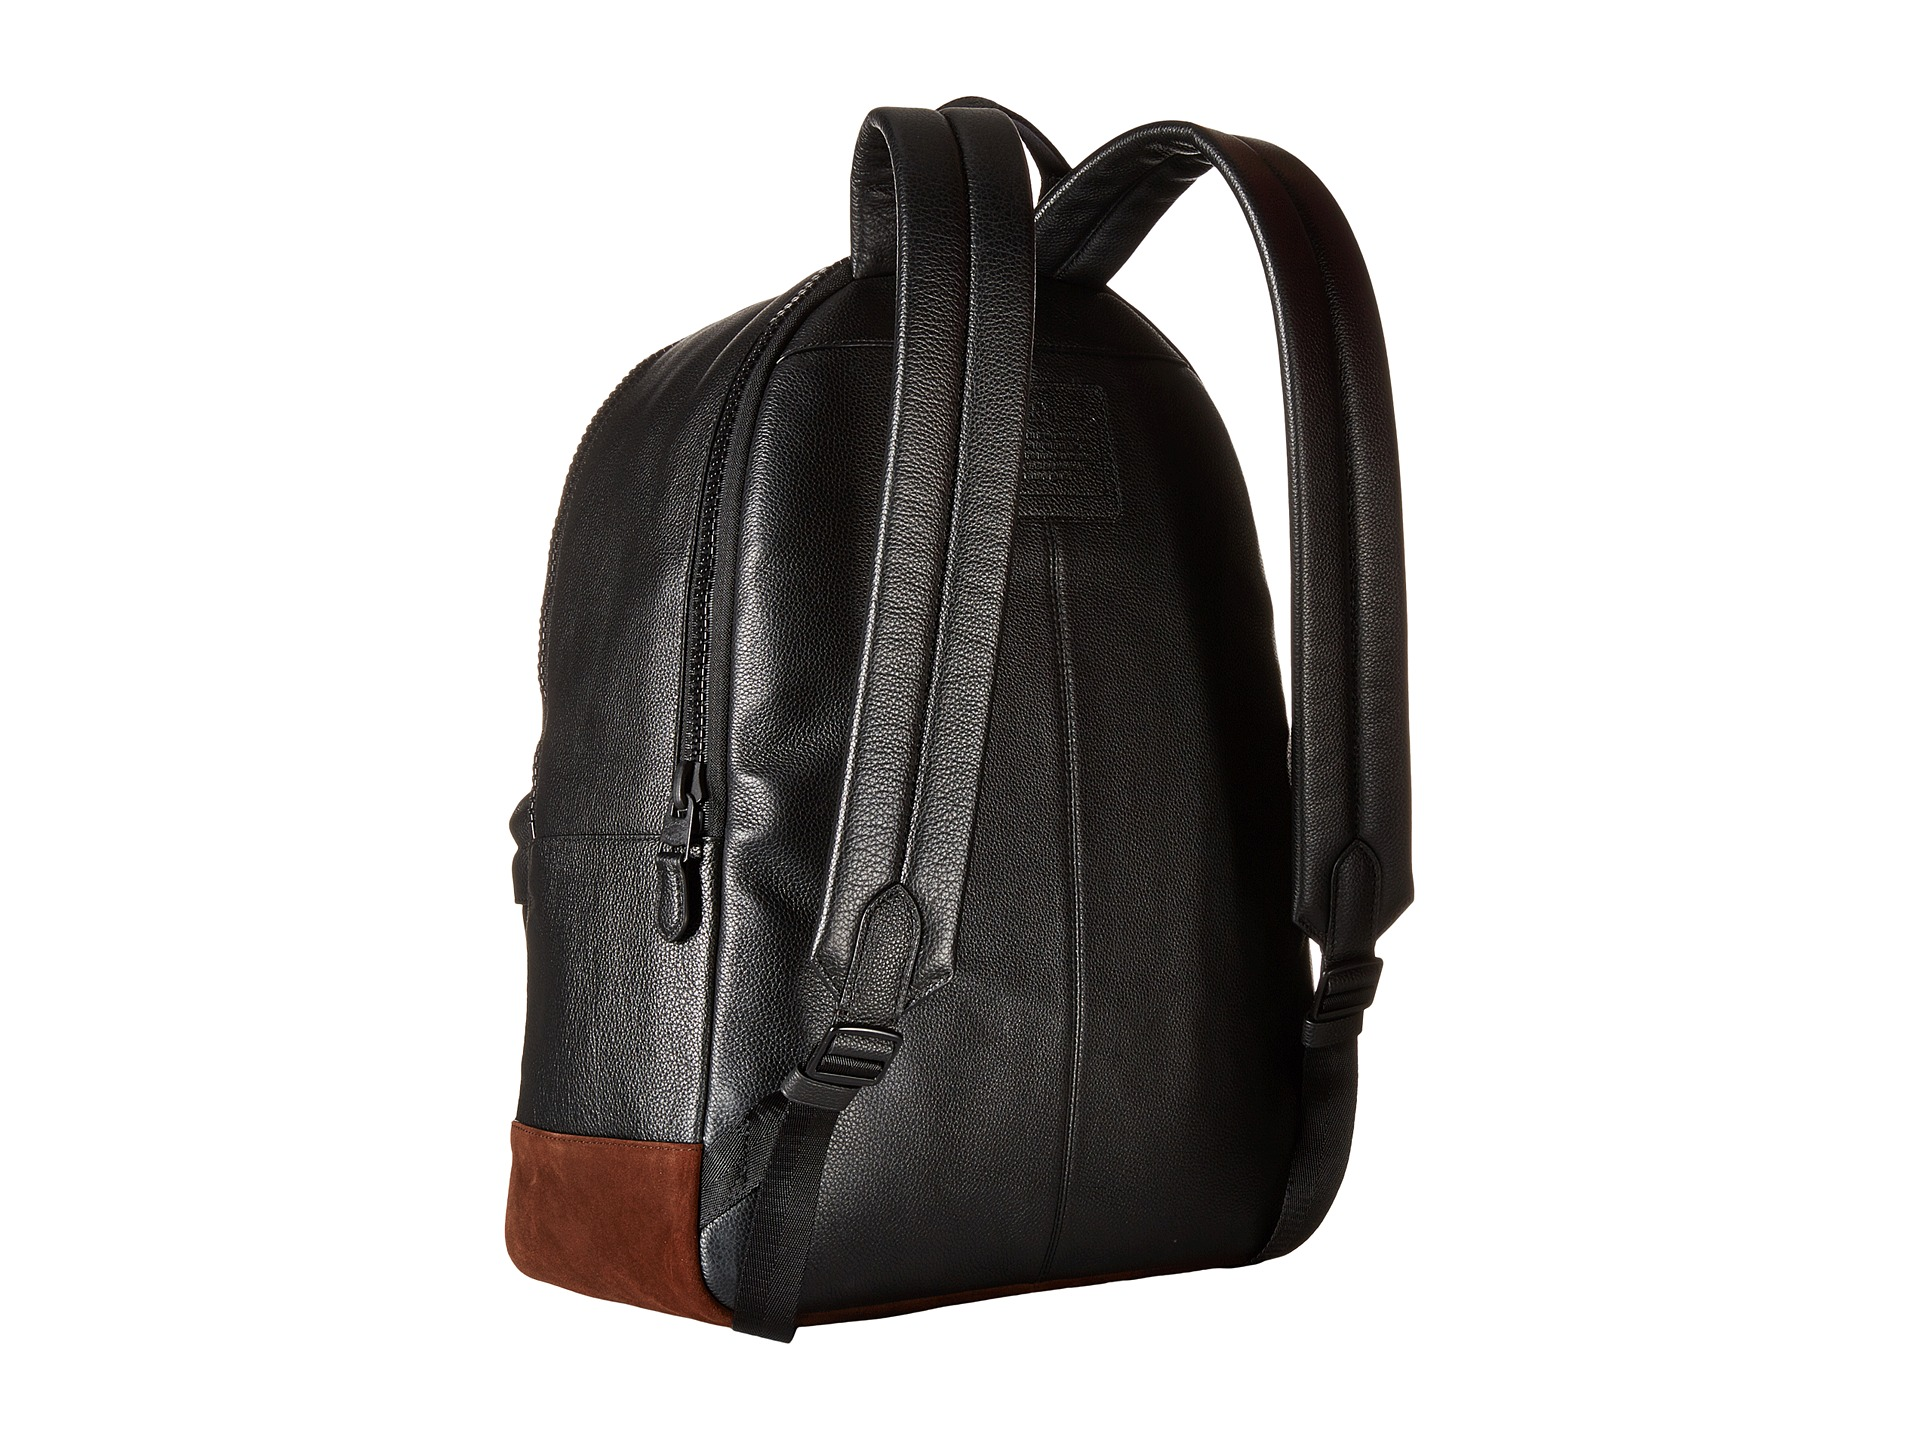 Men's Backpacks for the Trail, Traveling and More In this collection of men's backpacks from DICK'S Sporting Goods, you will find popular styles for a number of environments. Choose a design with the capacity to carry your books and lunch to class or discover a sleek modern bag for transporting your laptop to and from work.